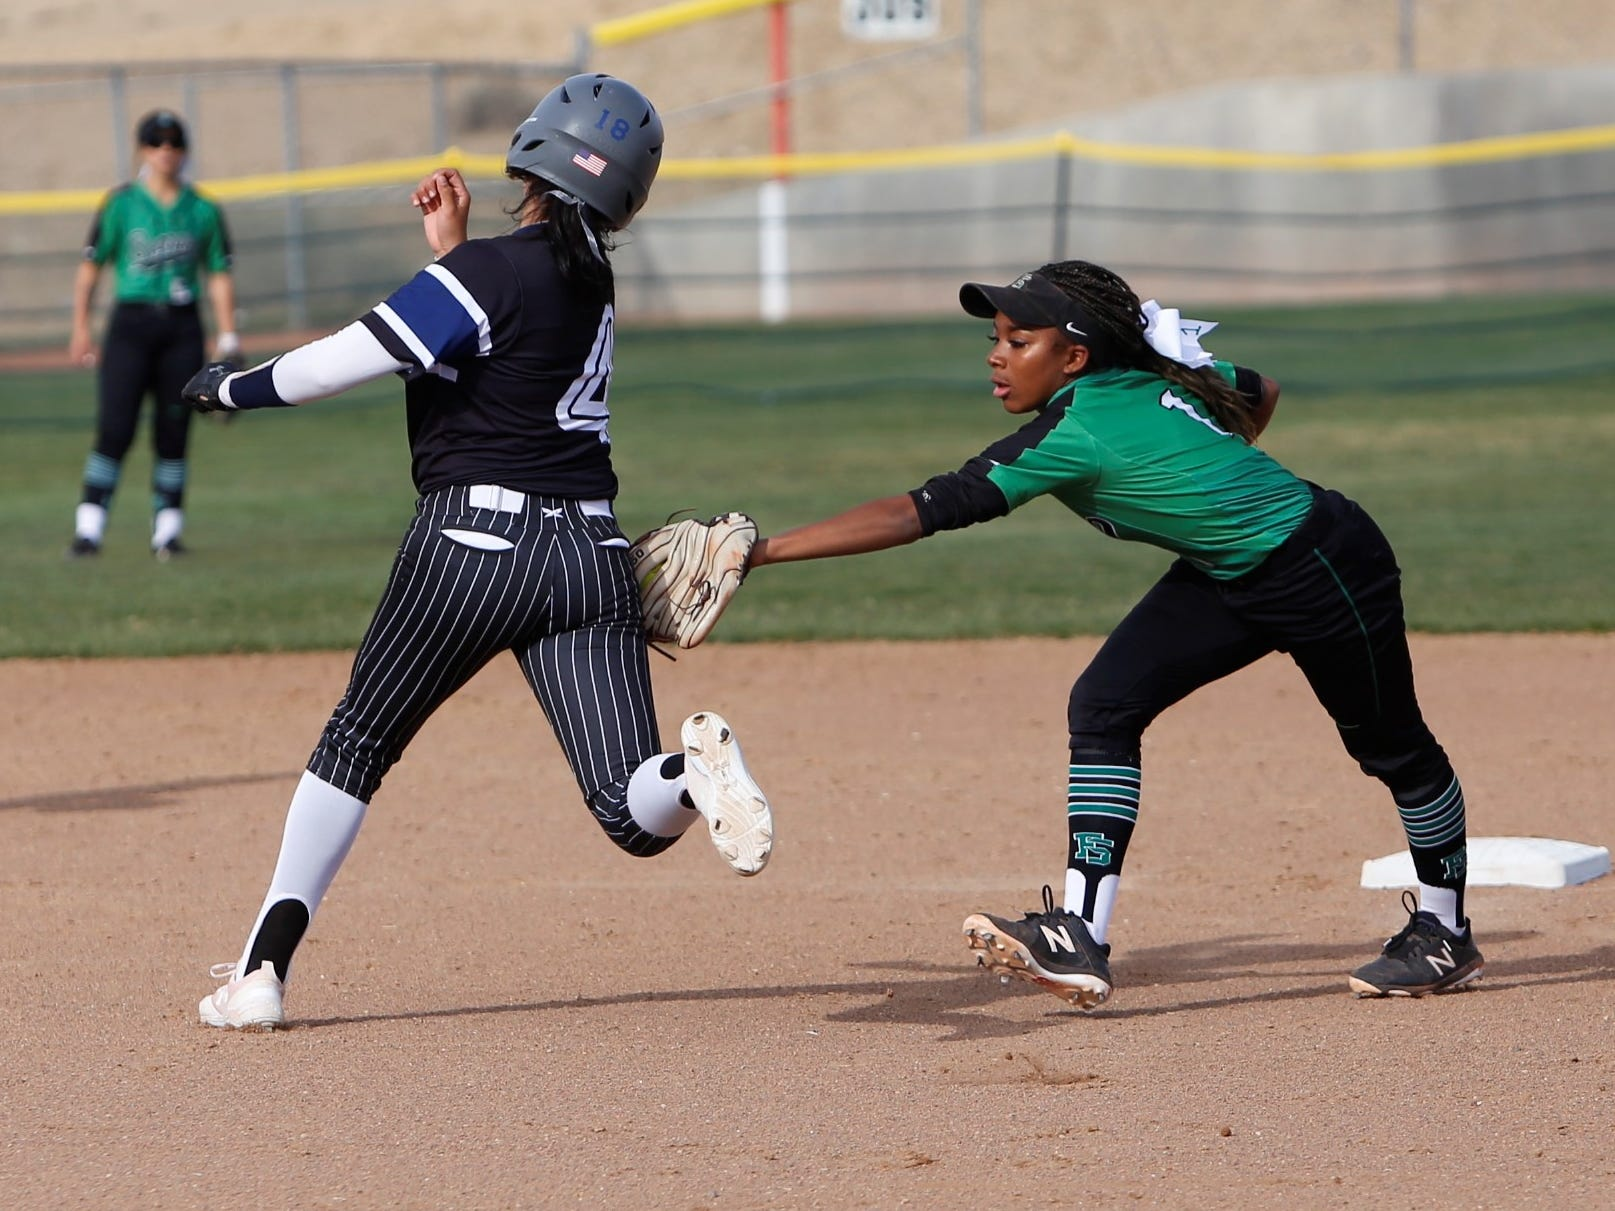 Farmington's Zo Plamer tags out Piedra Vista's Chaunelle Penn in front of second base during Friday's District 2-5A game at Farmington Sports Complex.